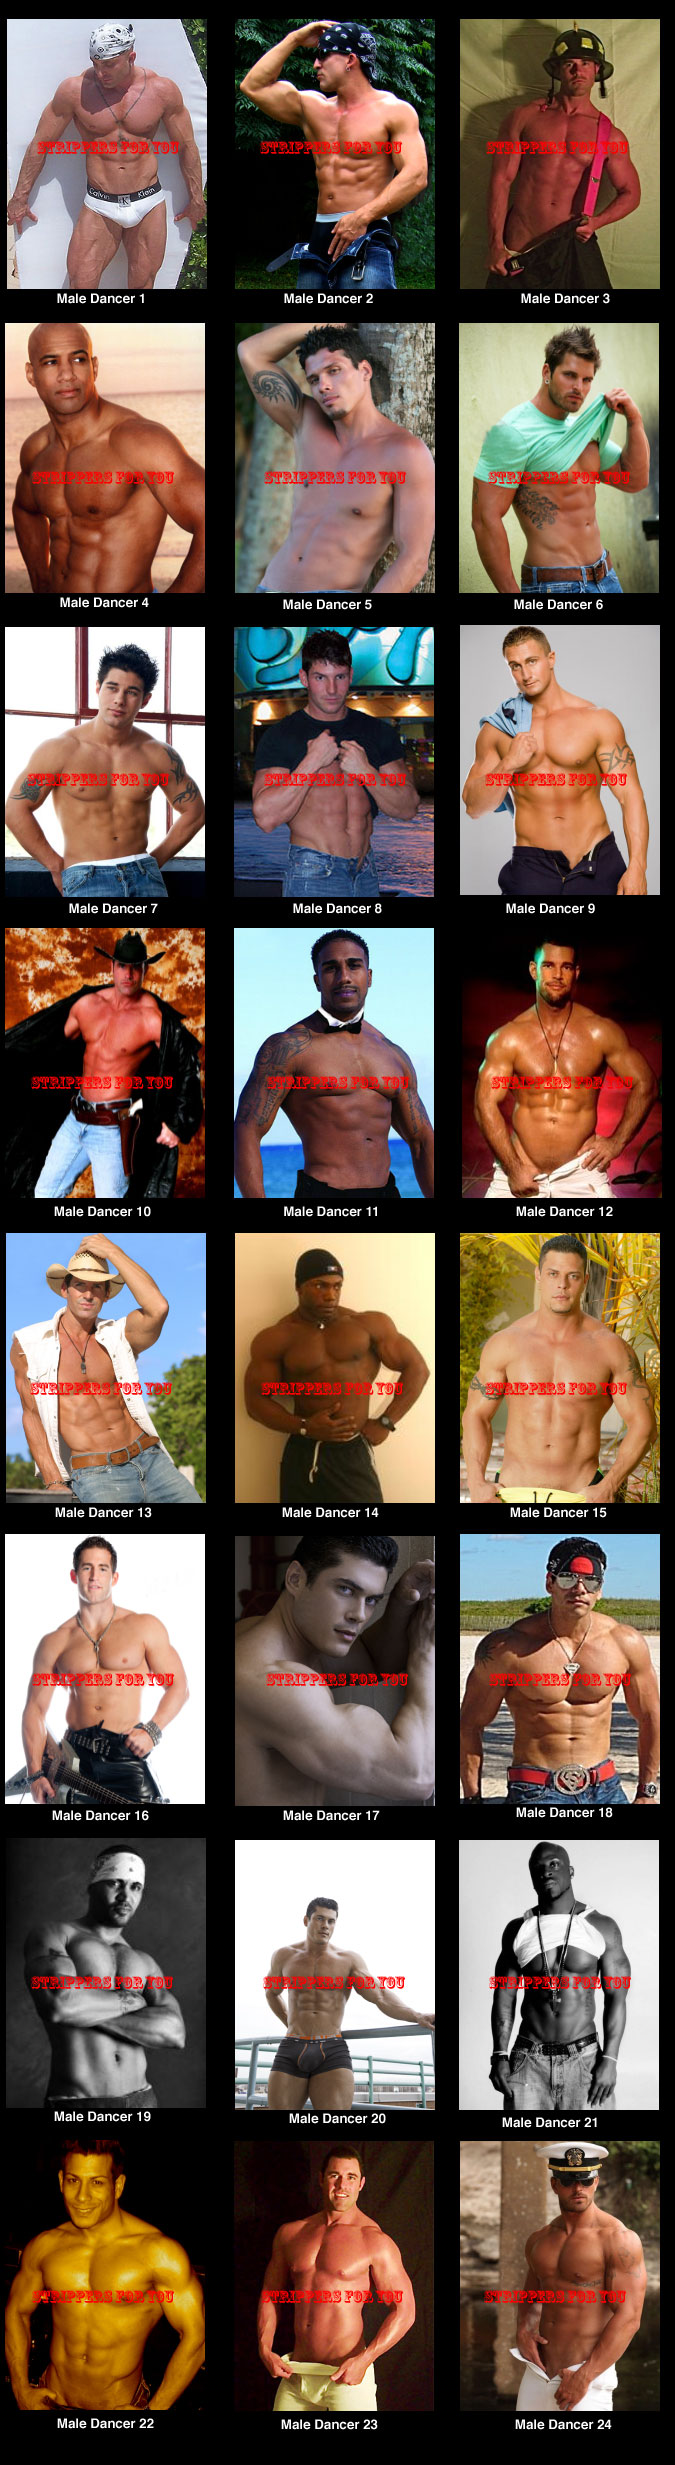 Orlando male strippers